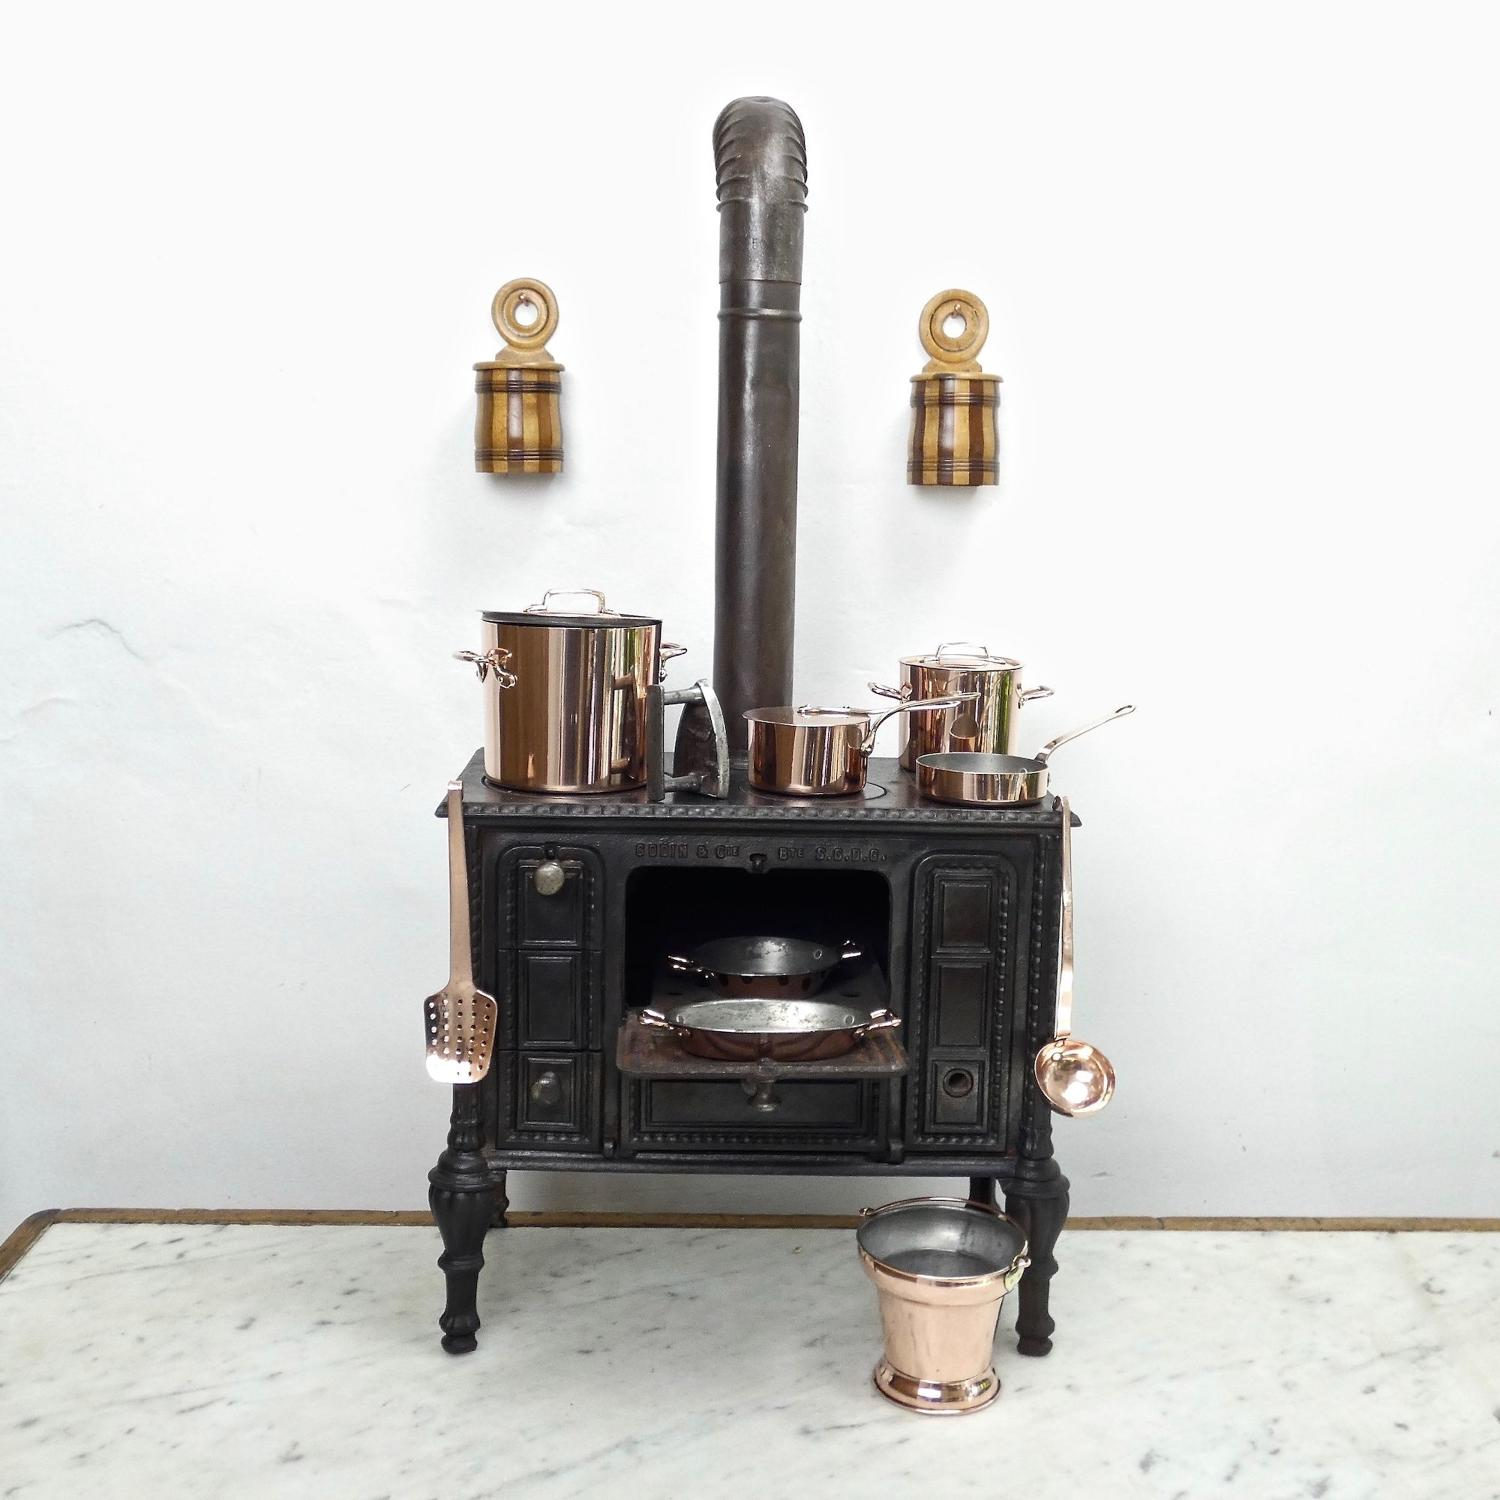 Miniature cast iron stove and copperware